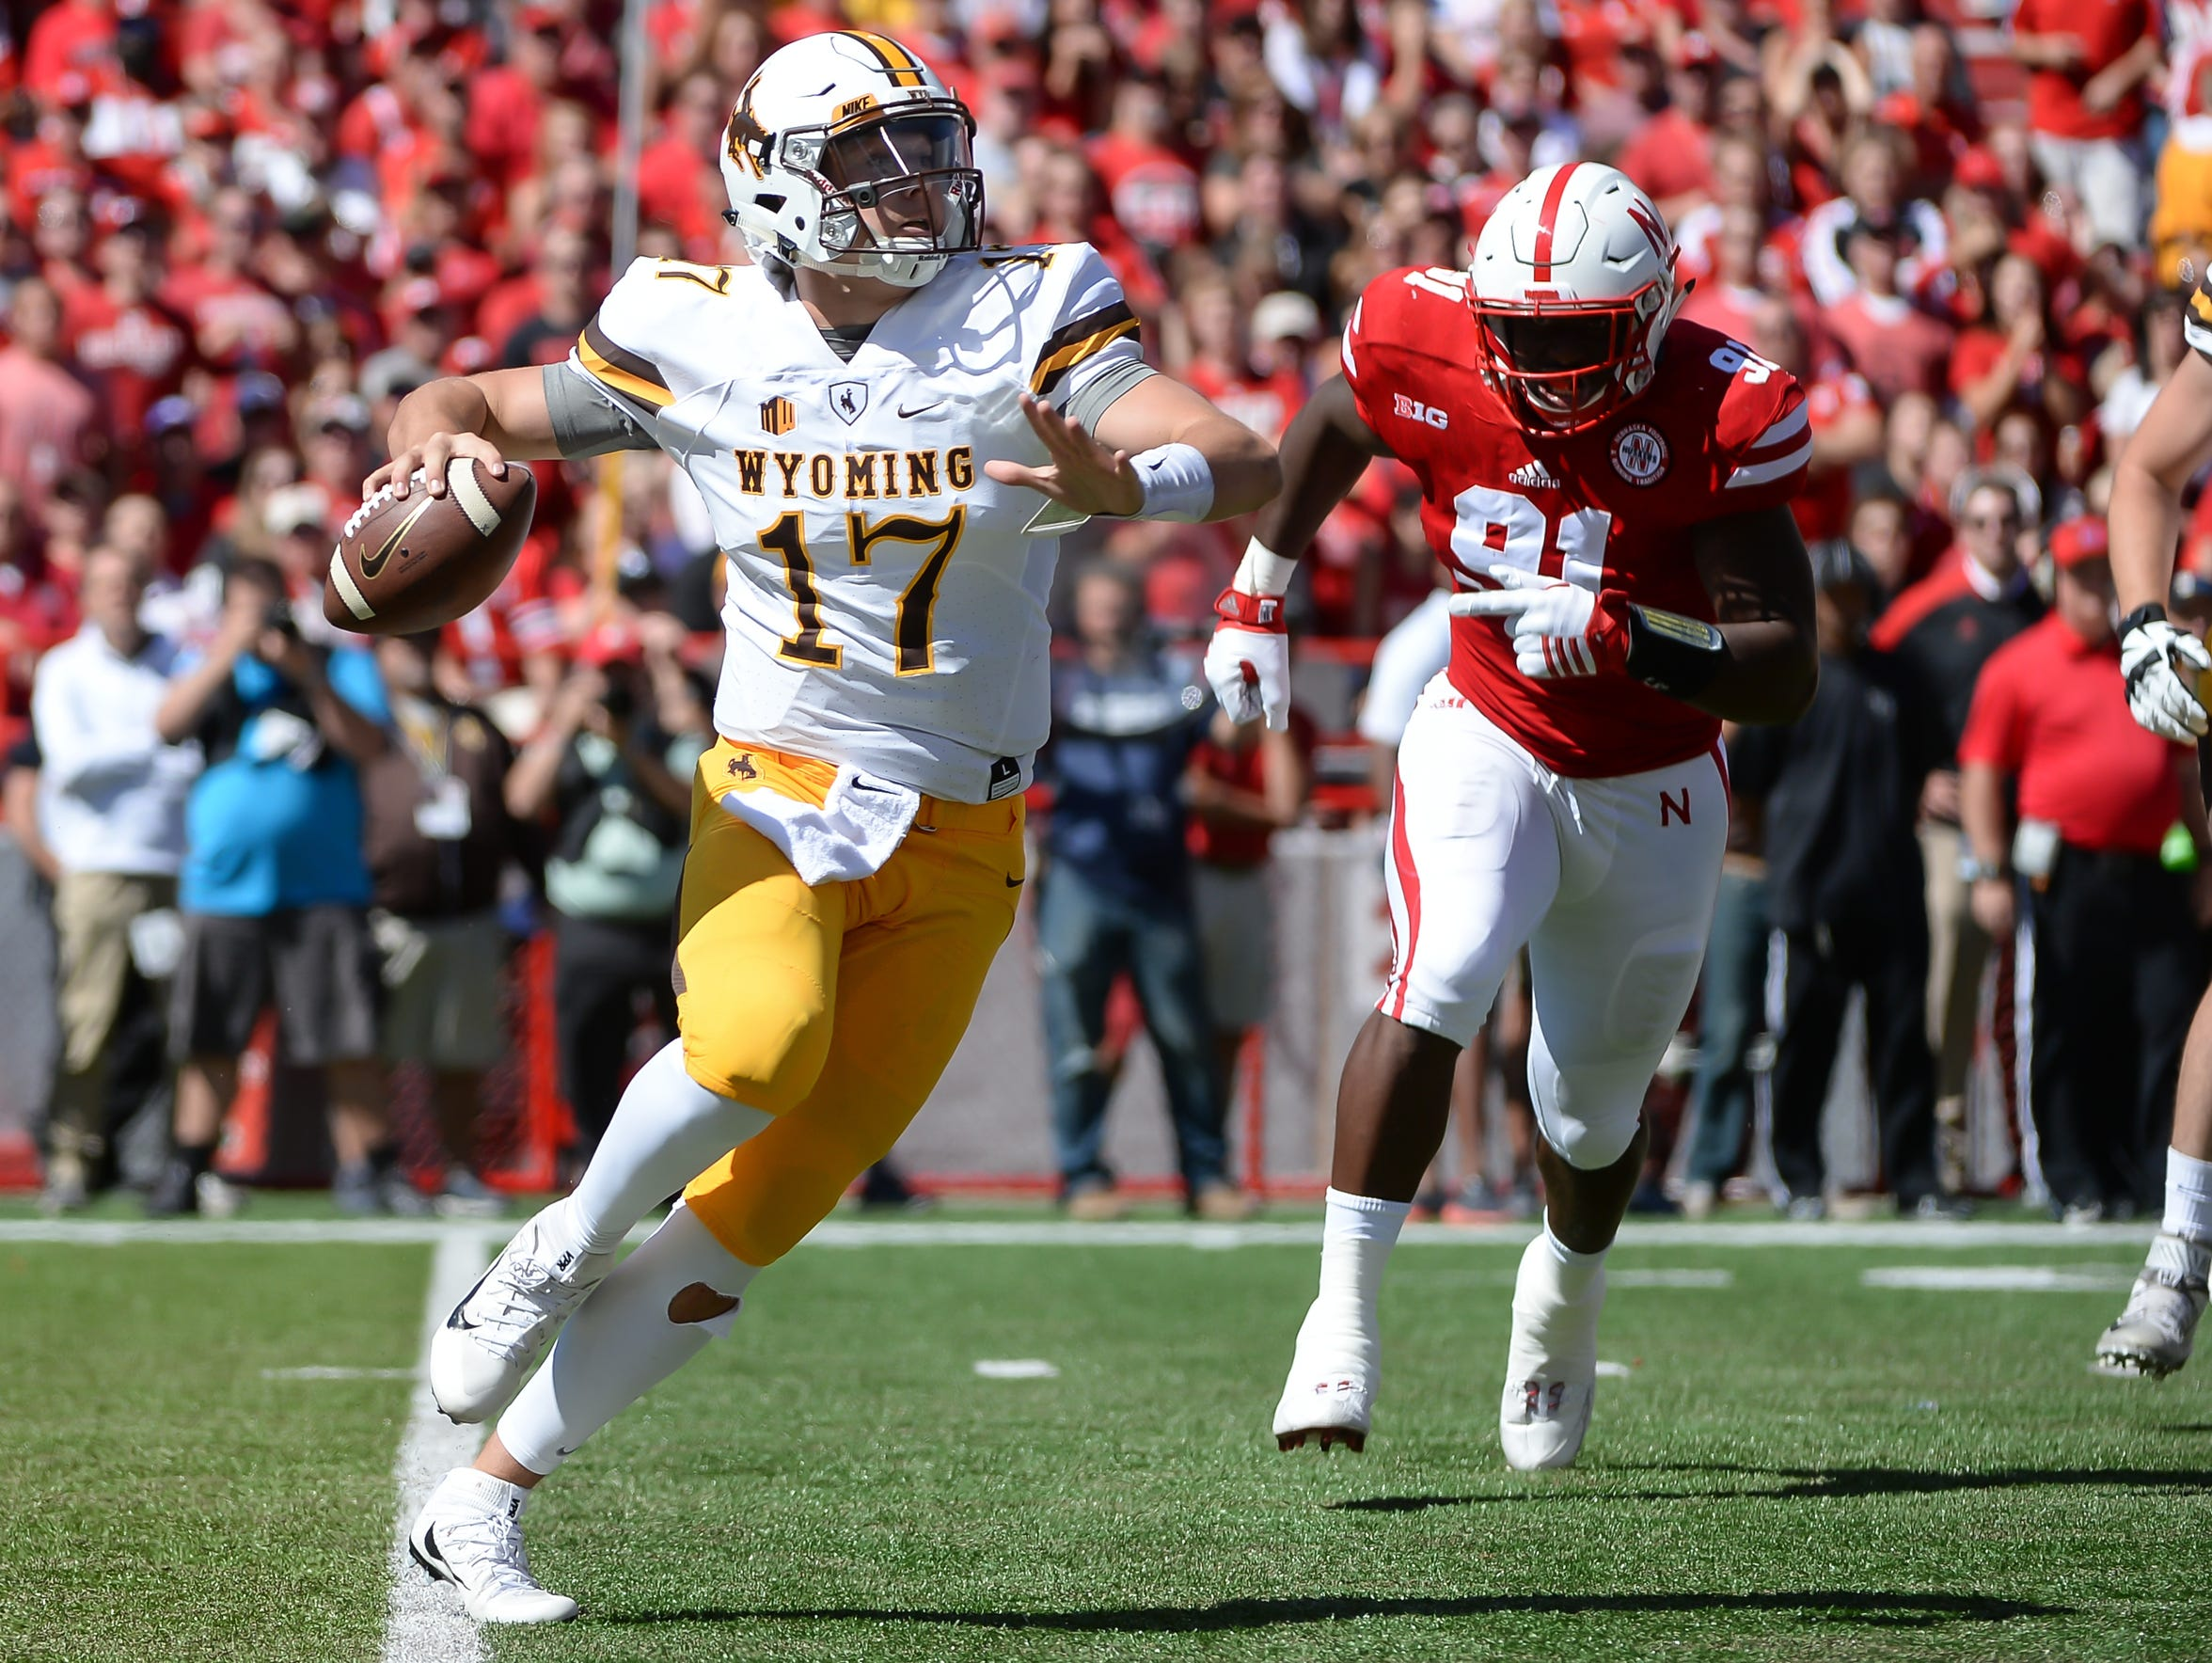 Quarterback Josh Allen #17 of the Wyoming Cowboys passes